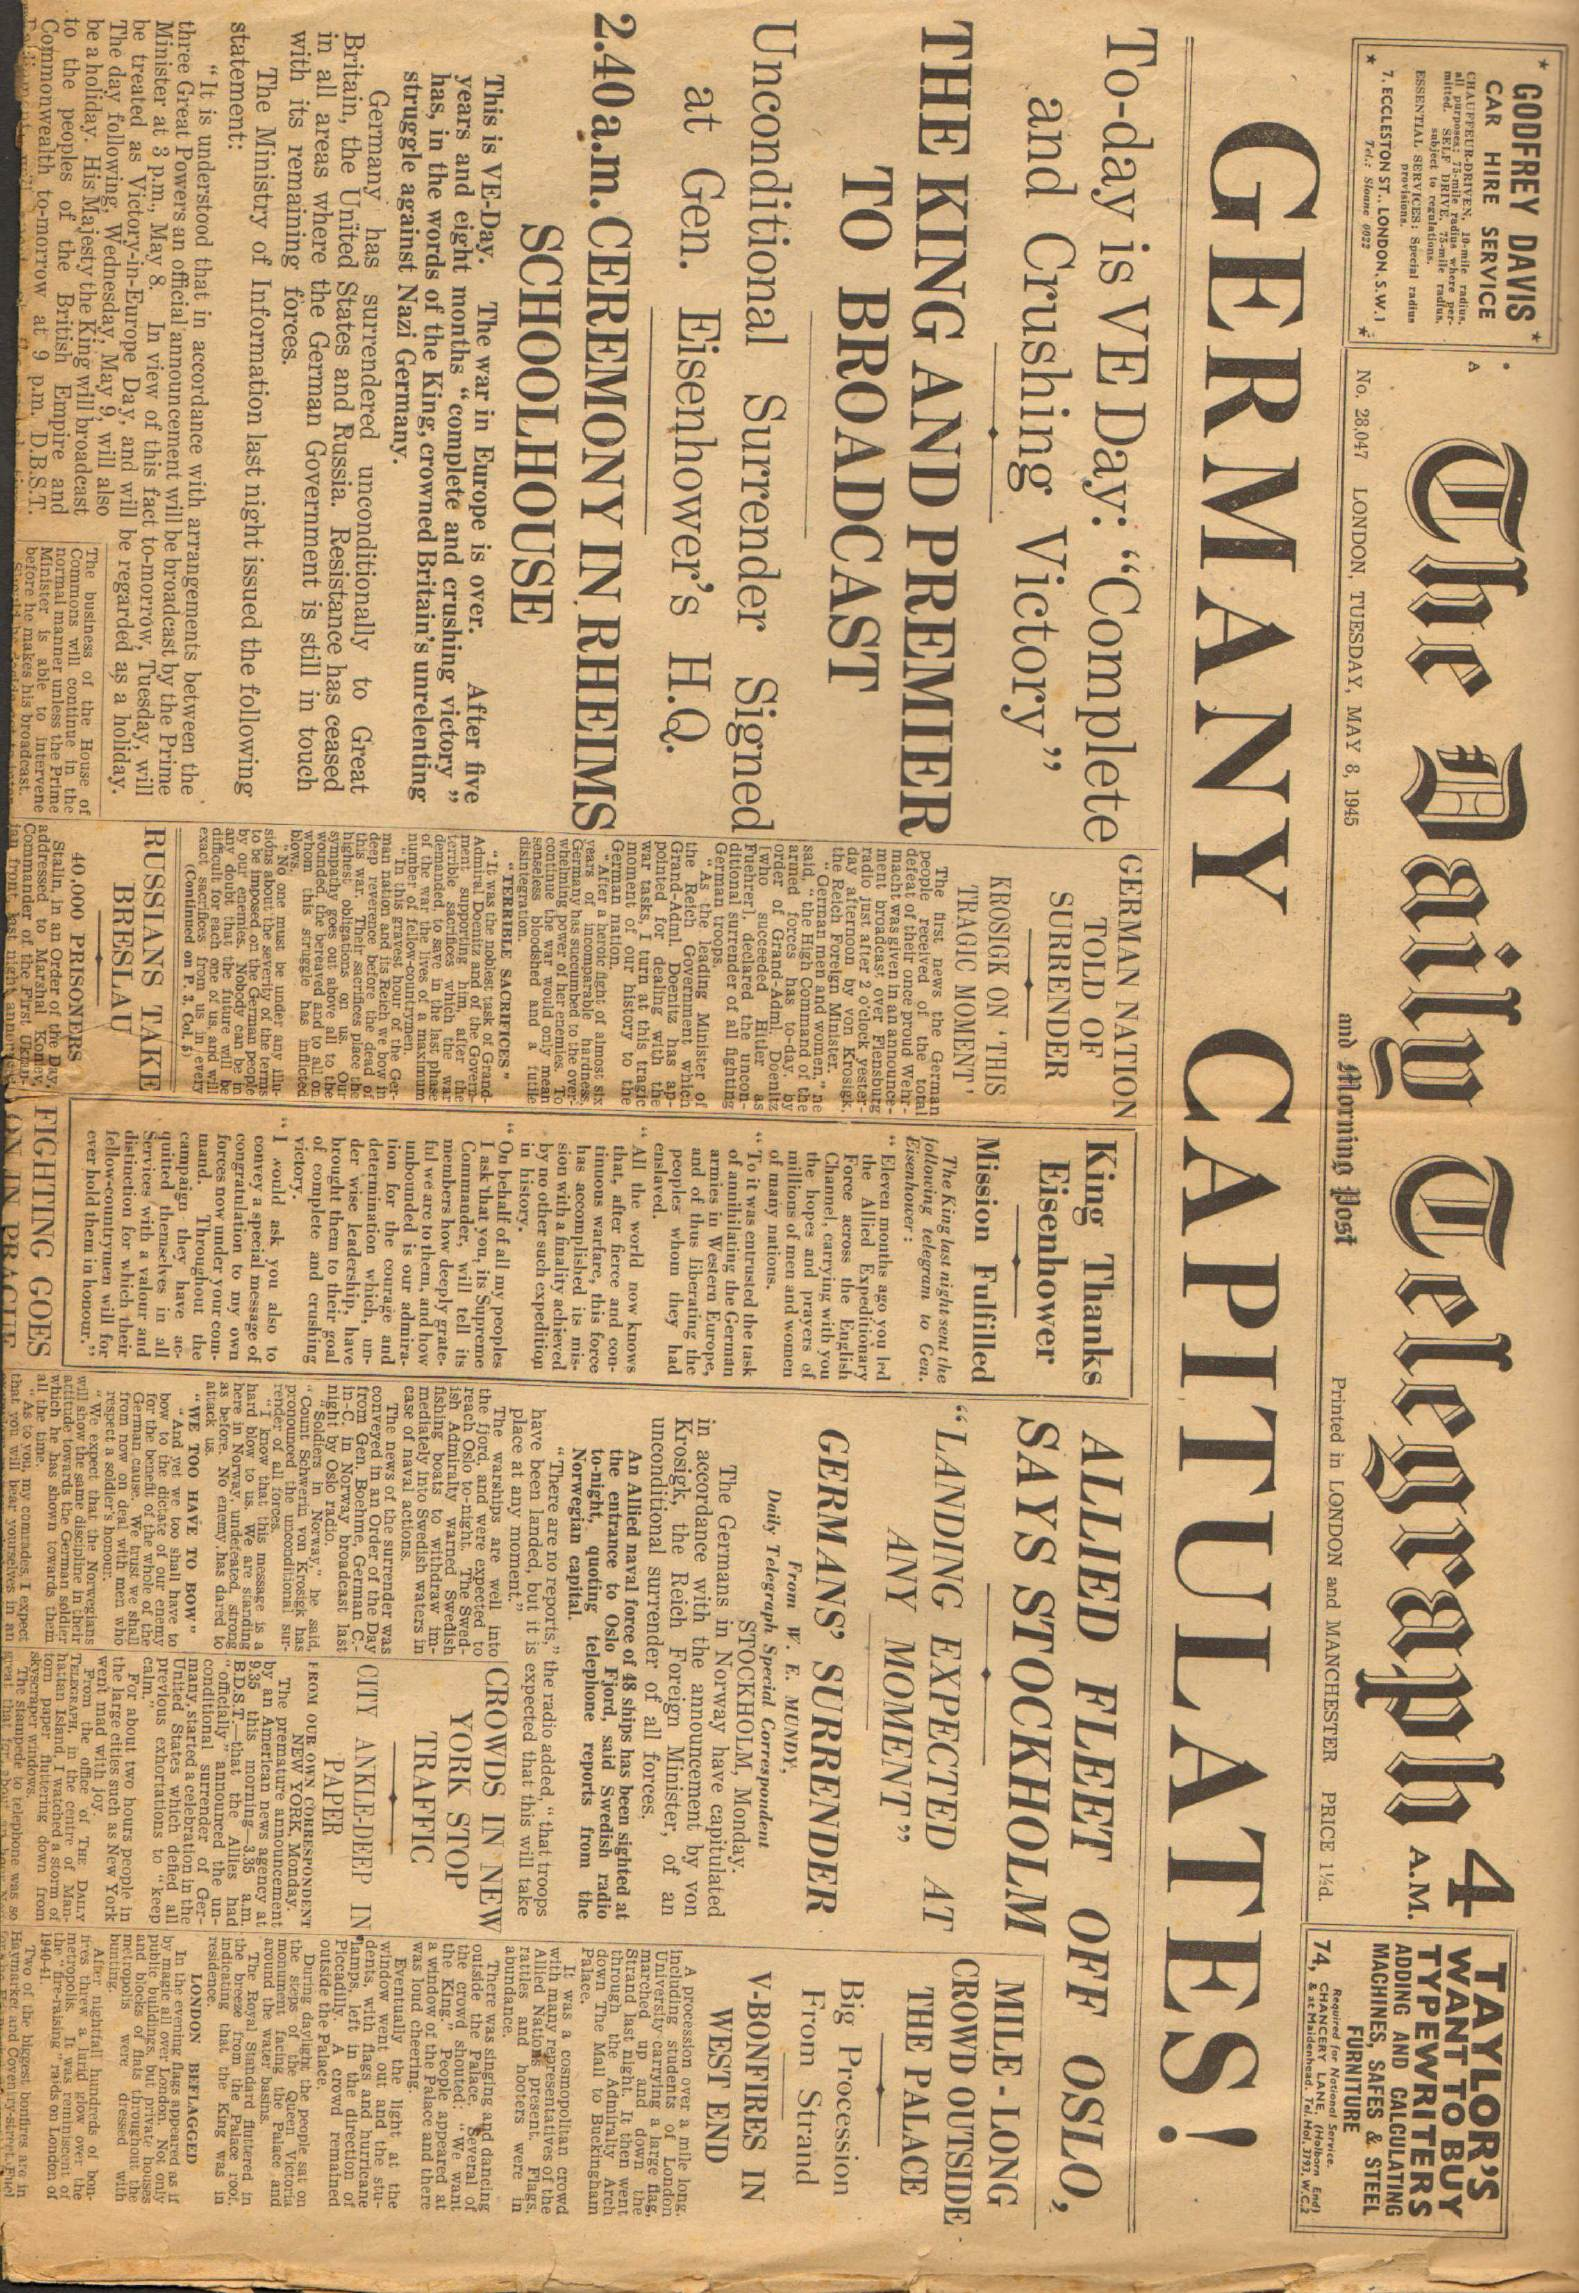 View individual pages of 'The Daily Telegraph  May 8th  1945'